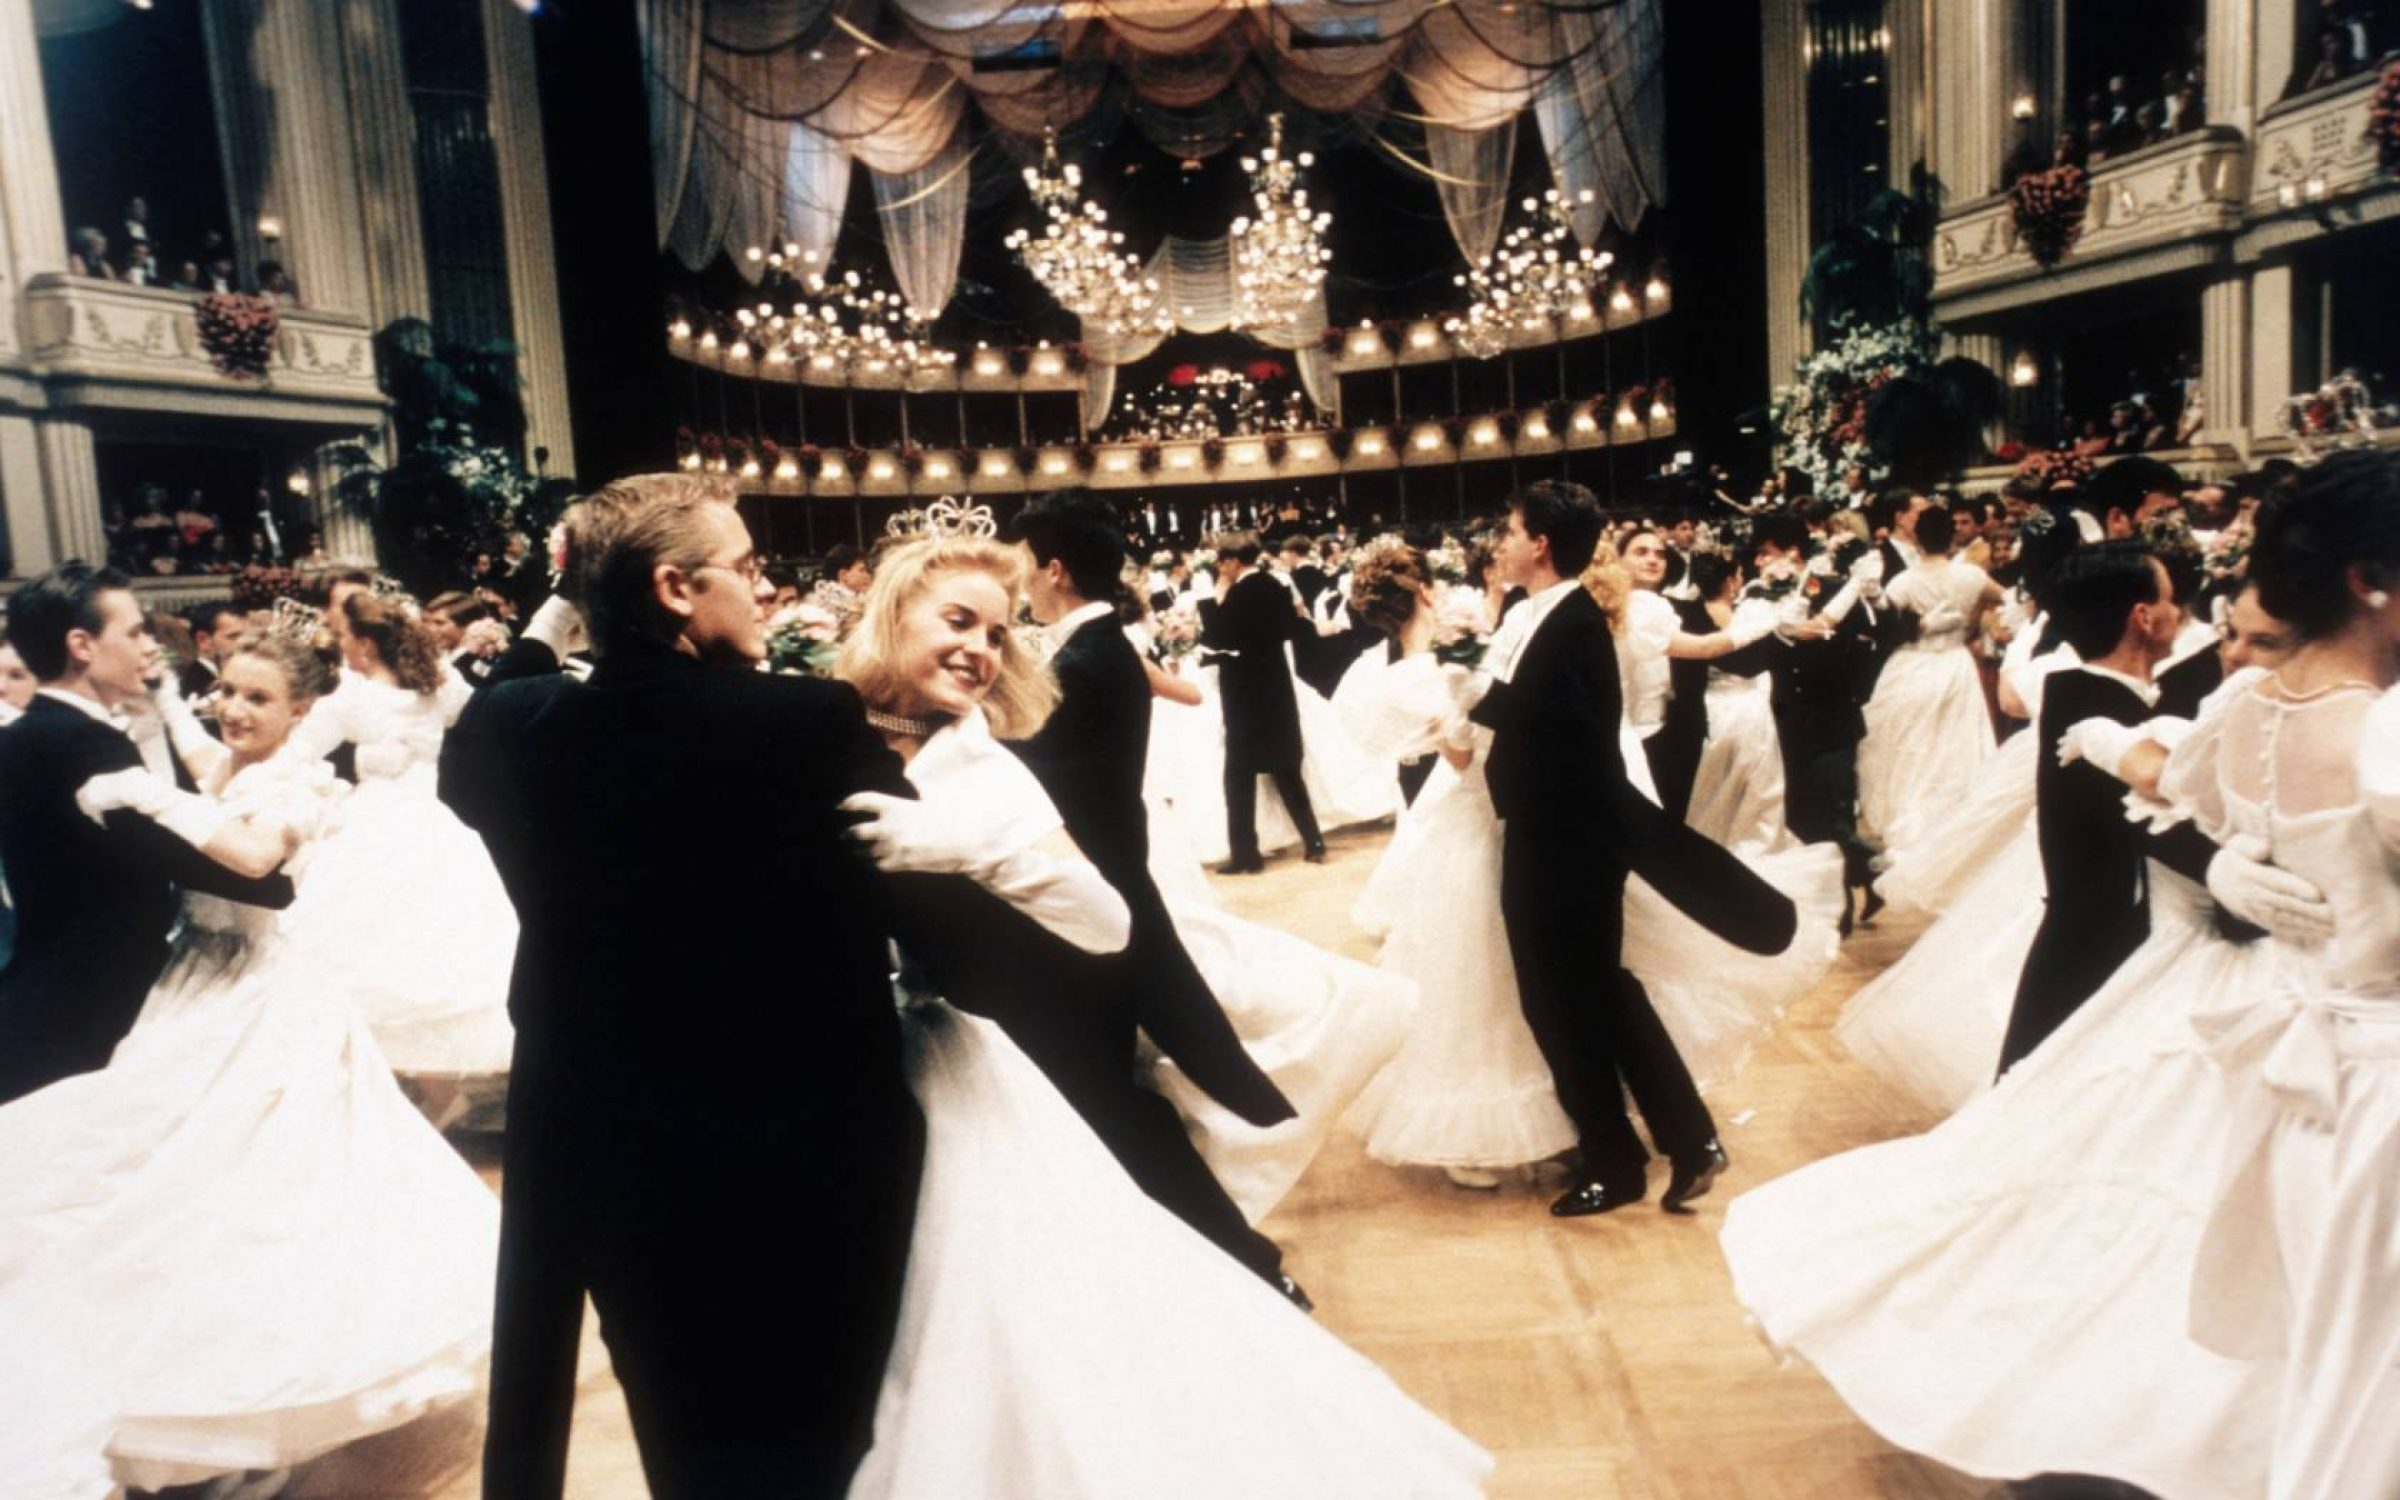 Couples waltz during the 1994 Vienna Opera Ball, an annual event held at the Vienna State Opera in Vienna, Austria. Credit: Reuter Raymond/Sygma via Getty Images